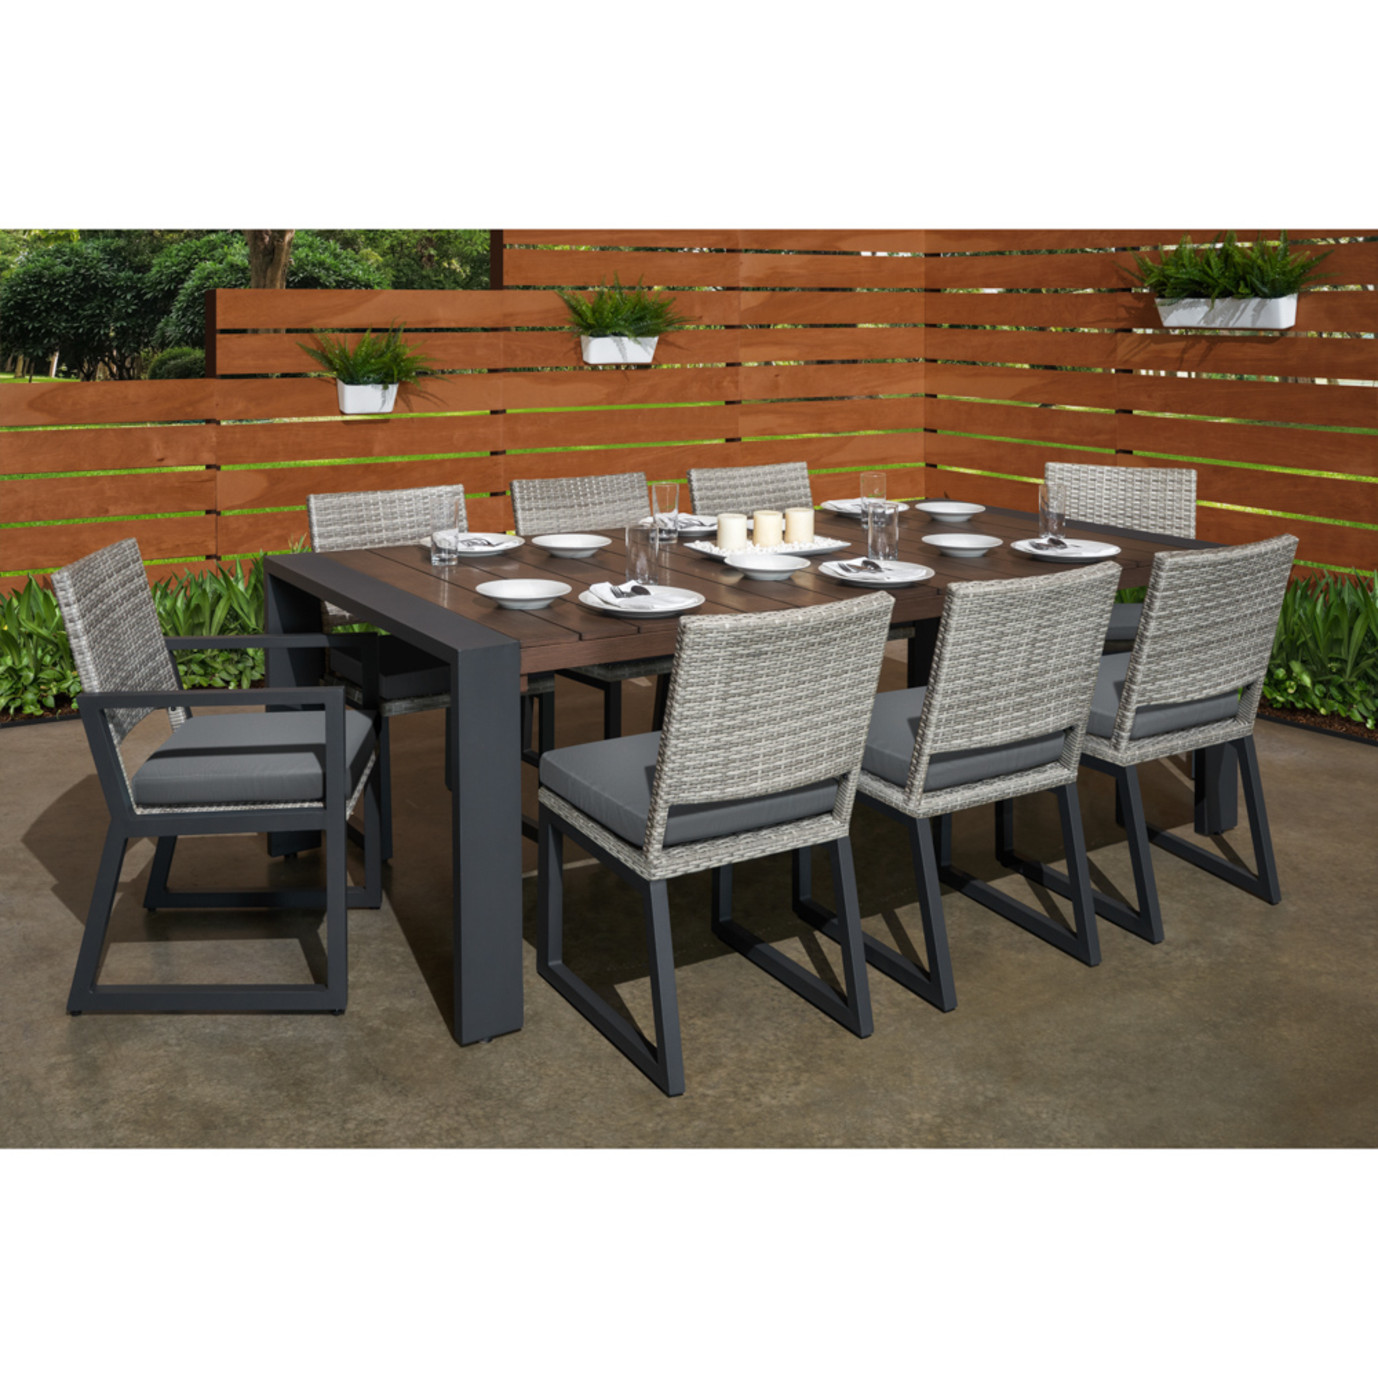 Milo™ Gray 9pc Dining Set - Charcoal Gray